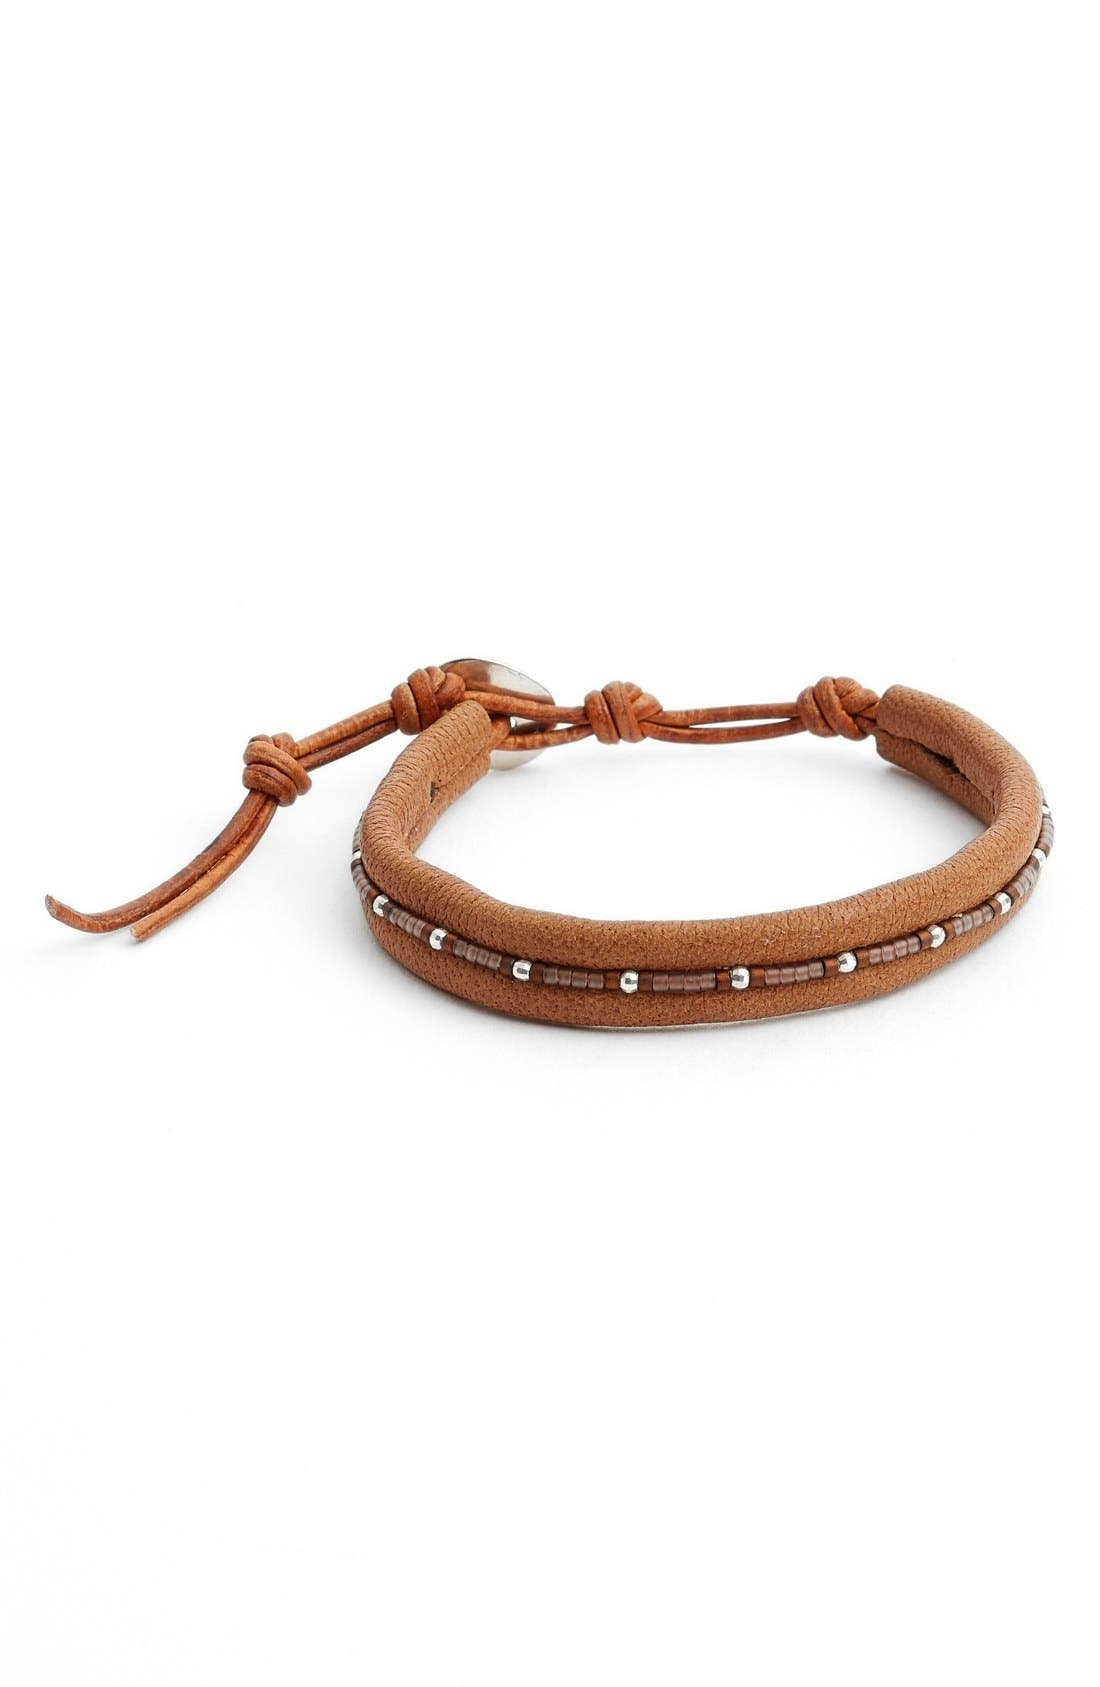 Alternate Image 1 Selected - Chan Luu Seed Beed Leather Bracelet